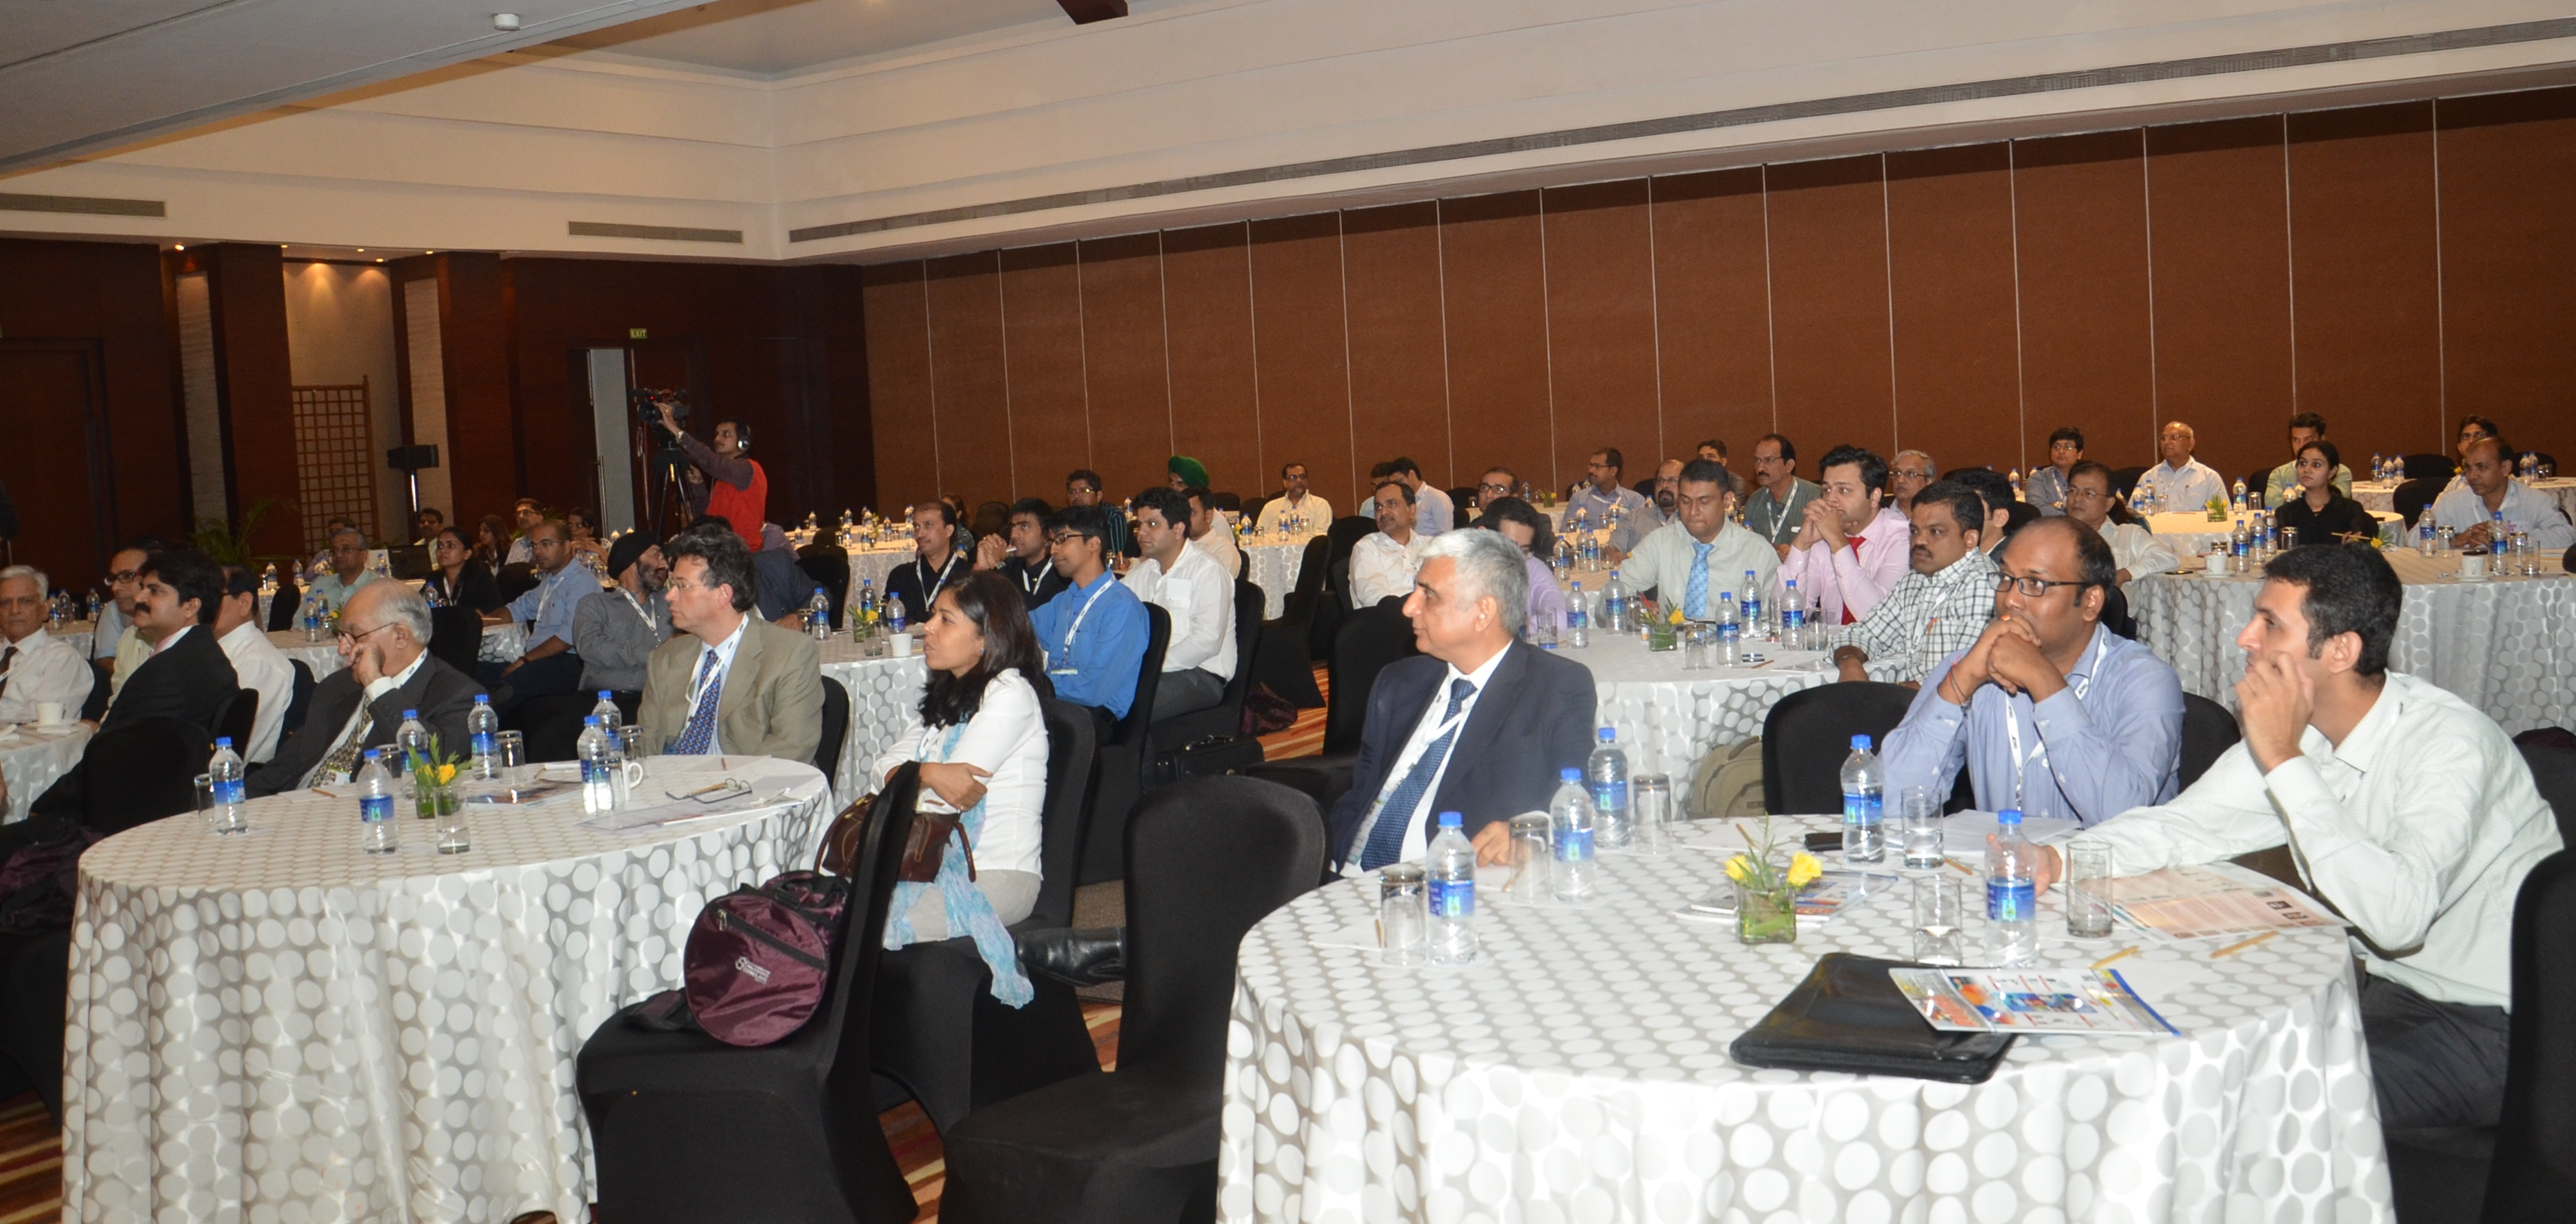 International Packaging Conclave 2013 Concludes Successfully